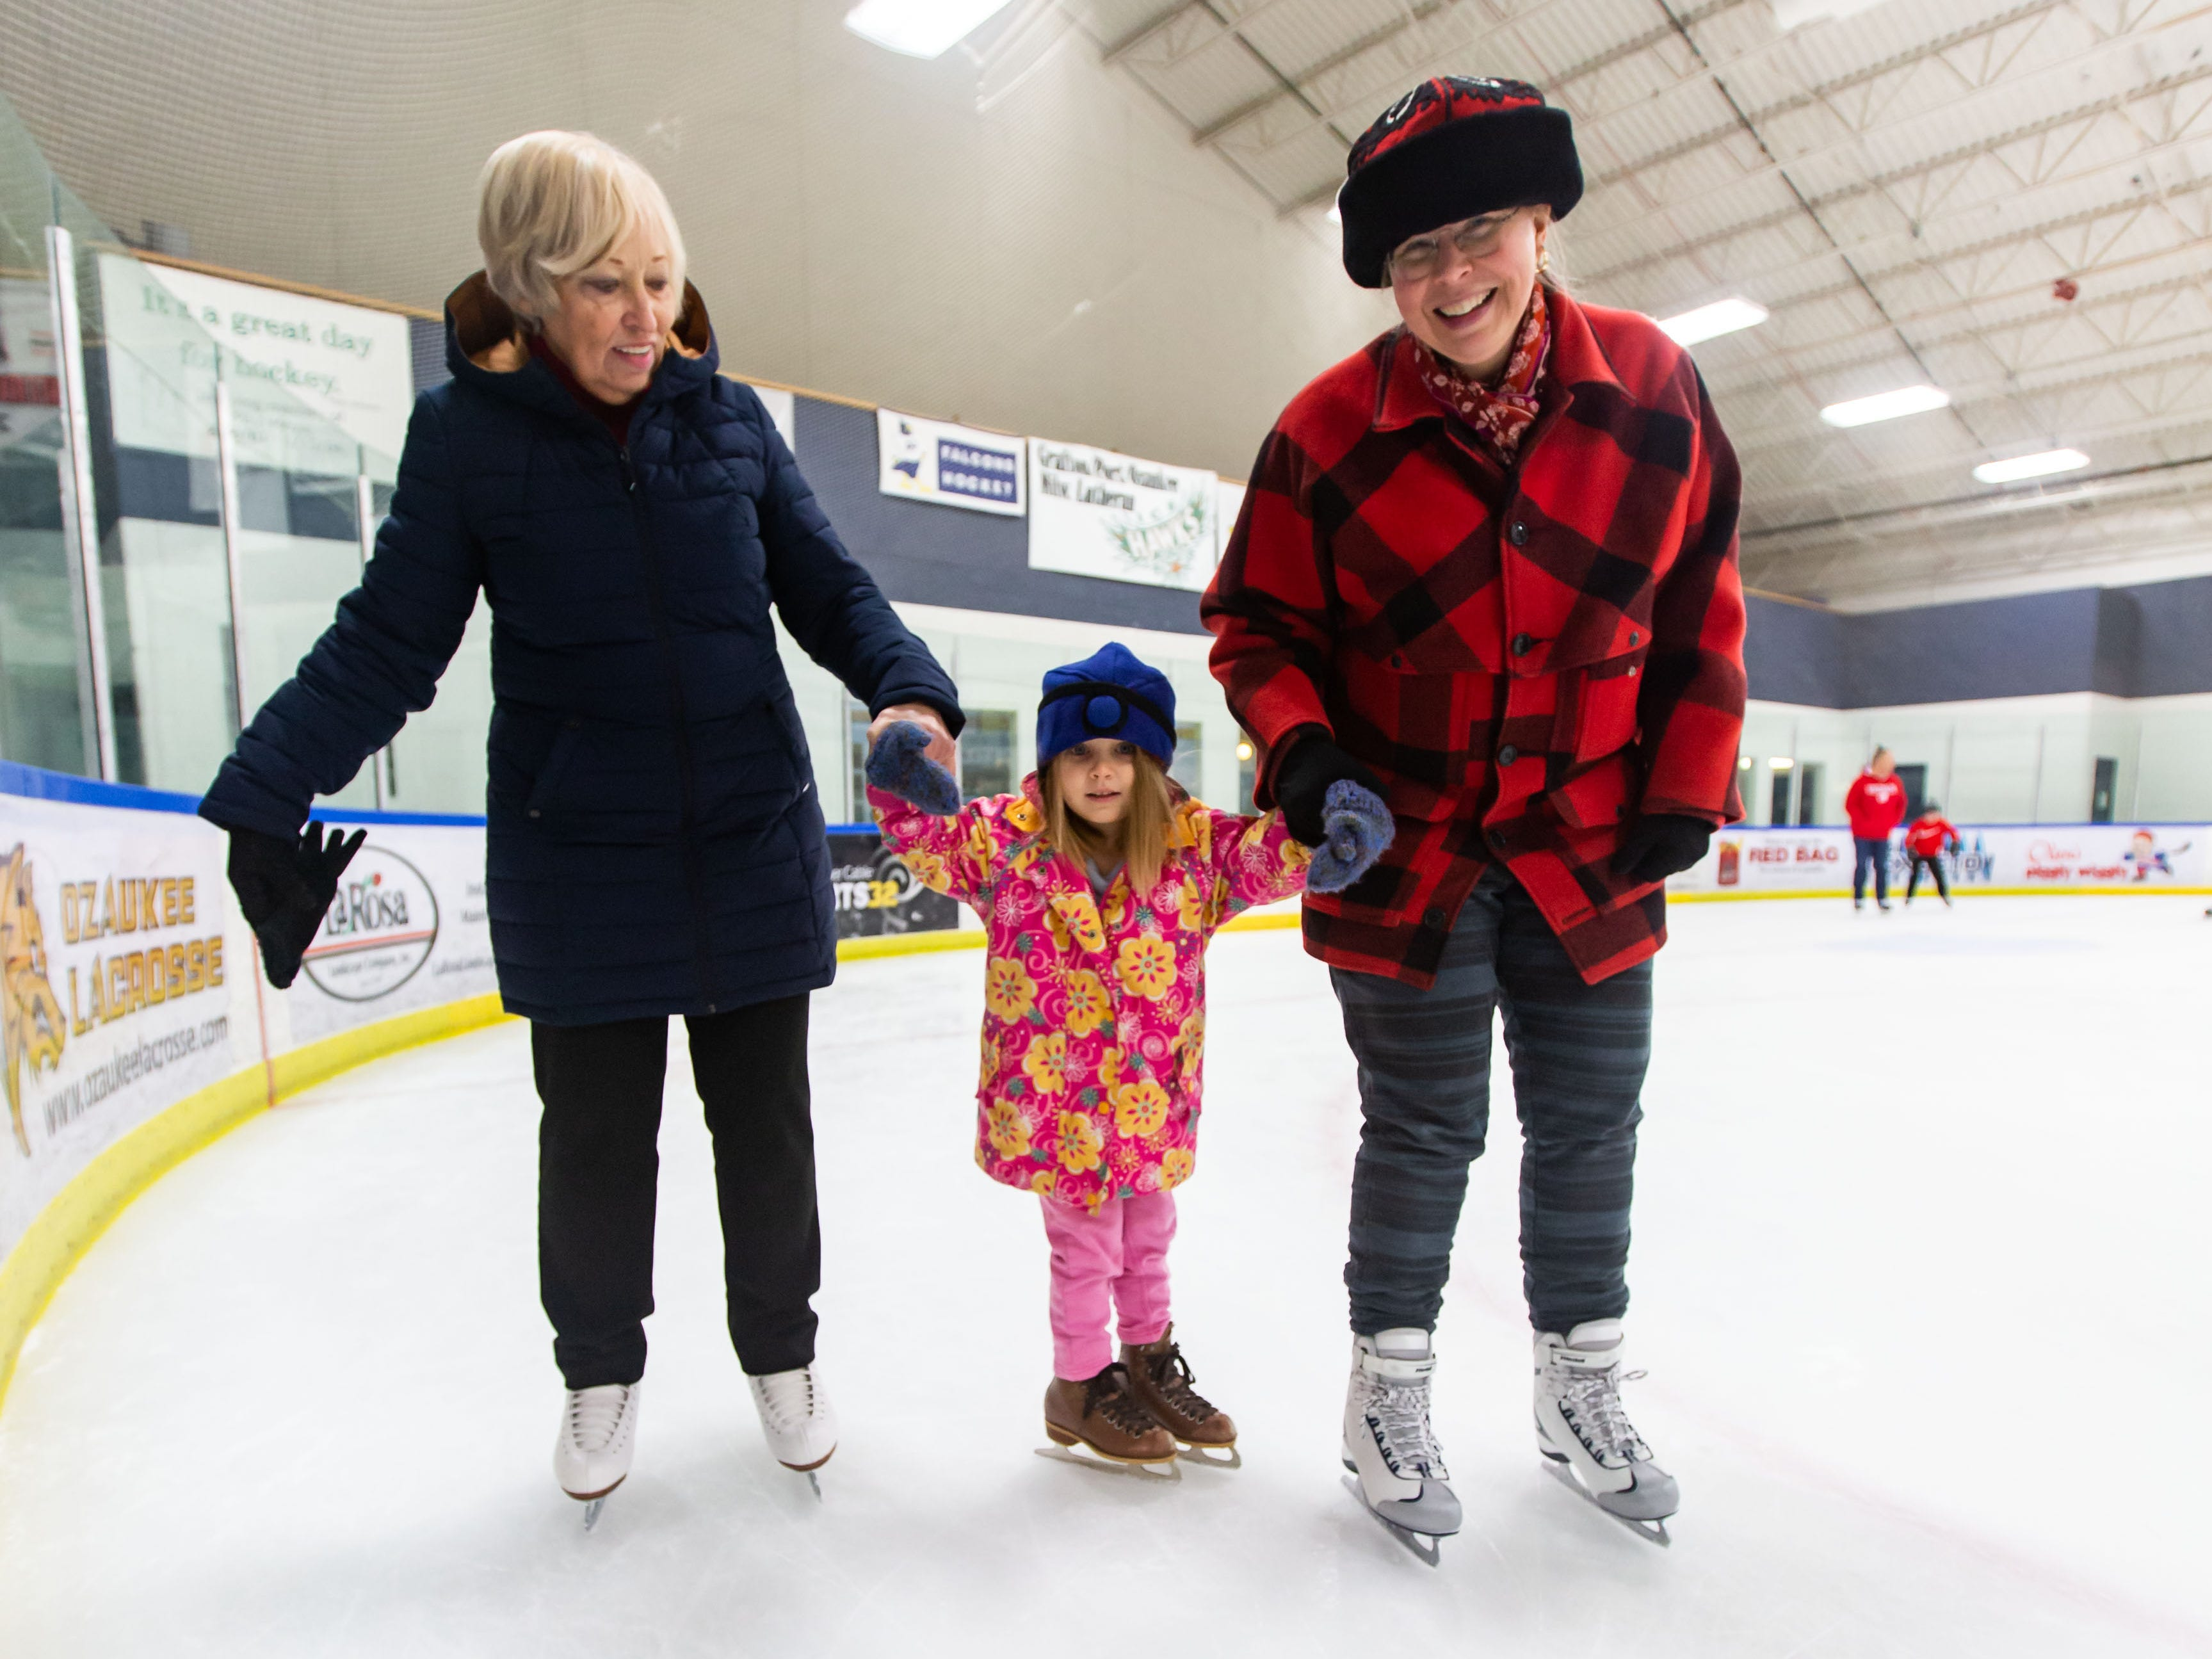 Instructor Lillian Habeck (left) skates with four-year-old Lillywolf Meltzer and her mother Katie of Mequon during public skating hours at the Ozaukee Ice Center in Mequon on Saturday, Dec. 22, 2018.